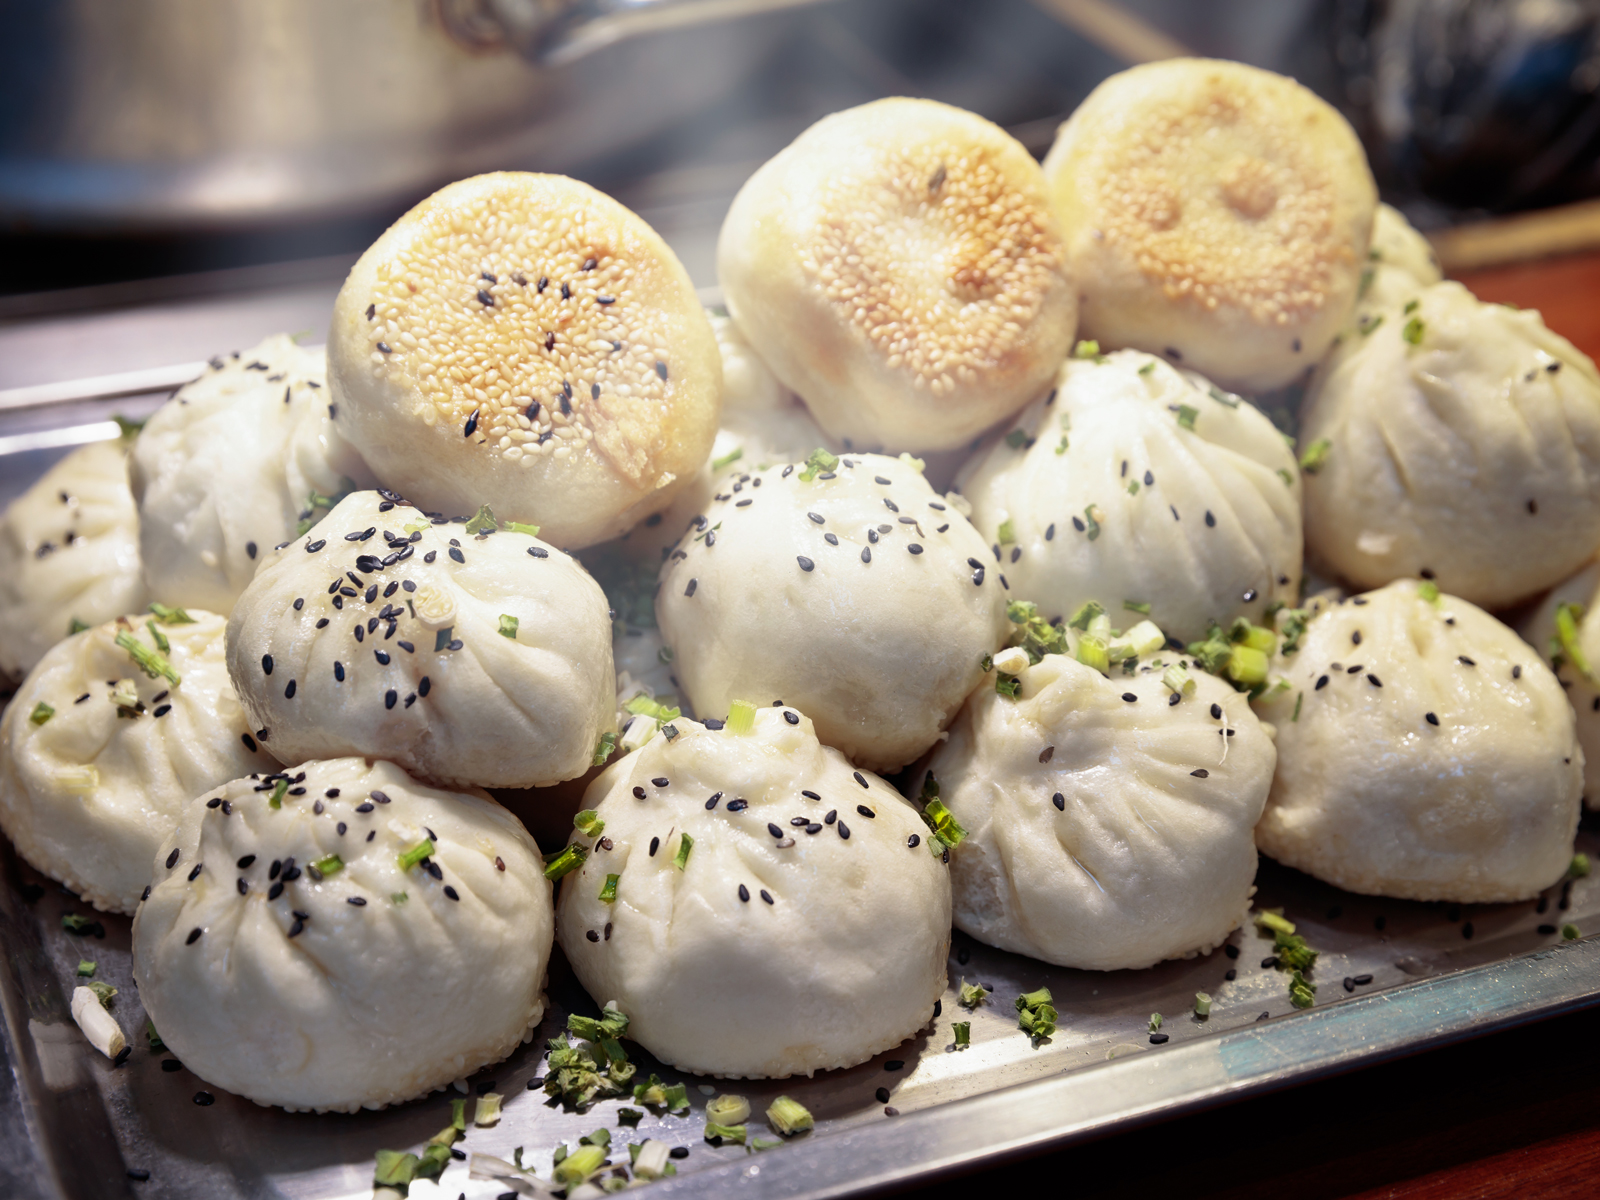 Check Out the Best Rap Song About Bao You'll Hear Today